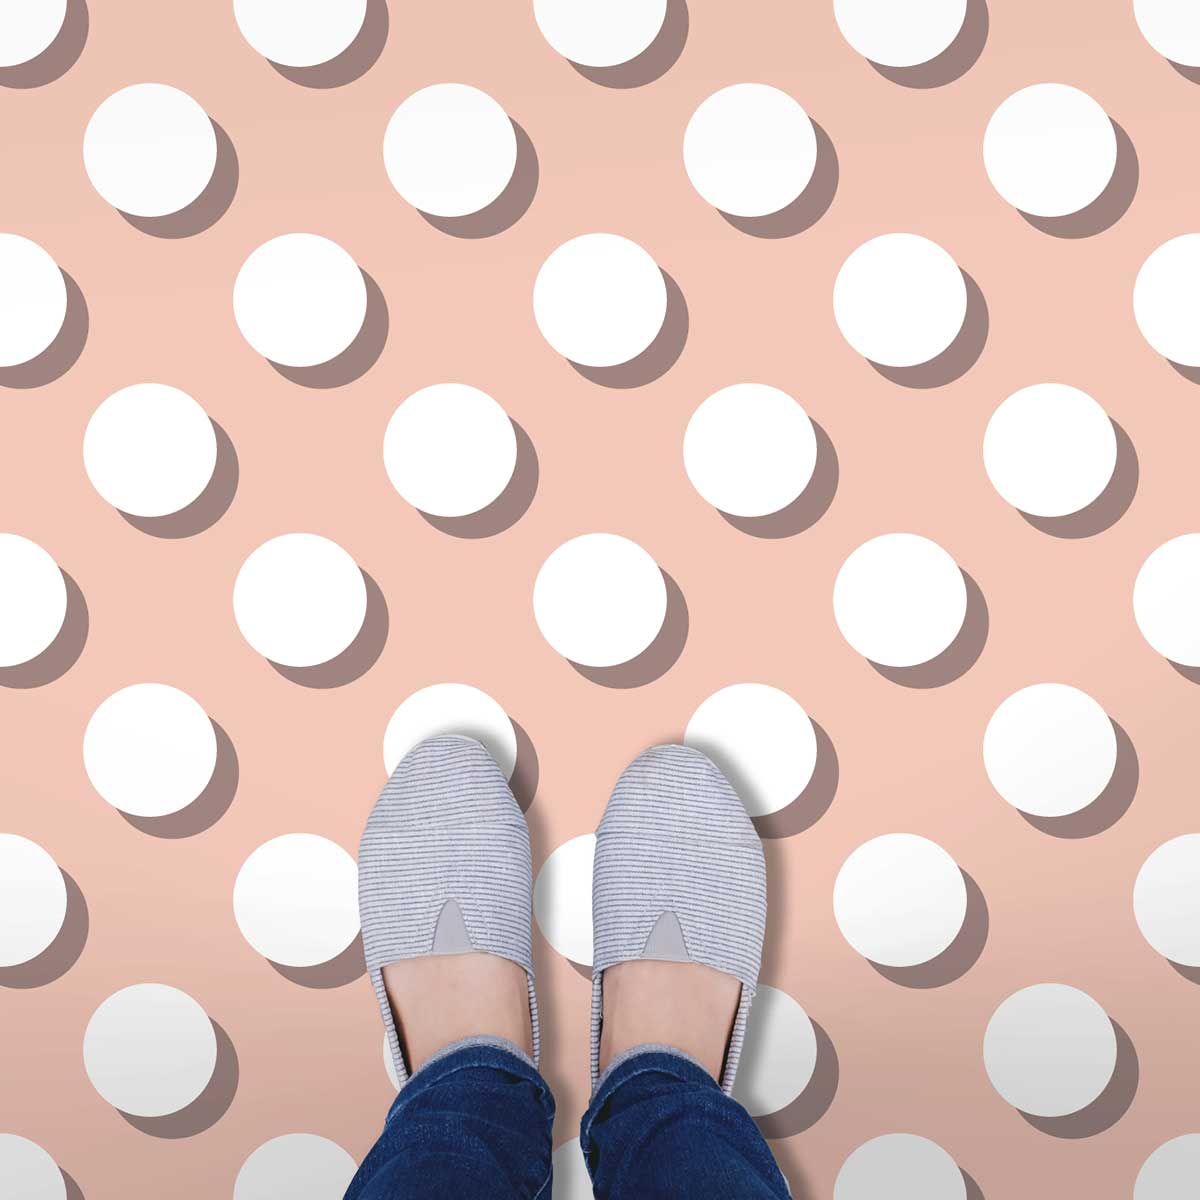 Image of a pink and white Polka Dot flooring used in a blog post about Polka Dot floor tiles from forthefloorandmore.com